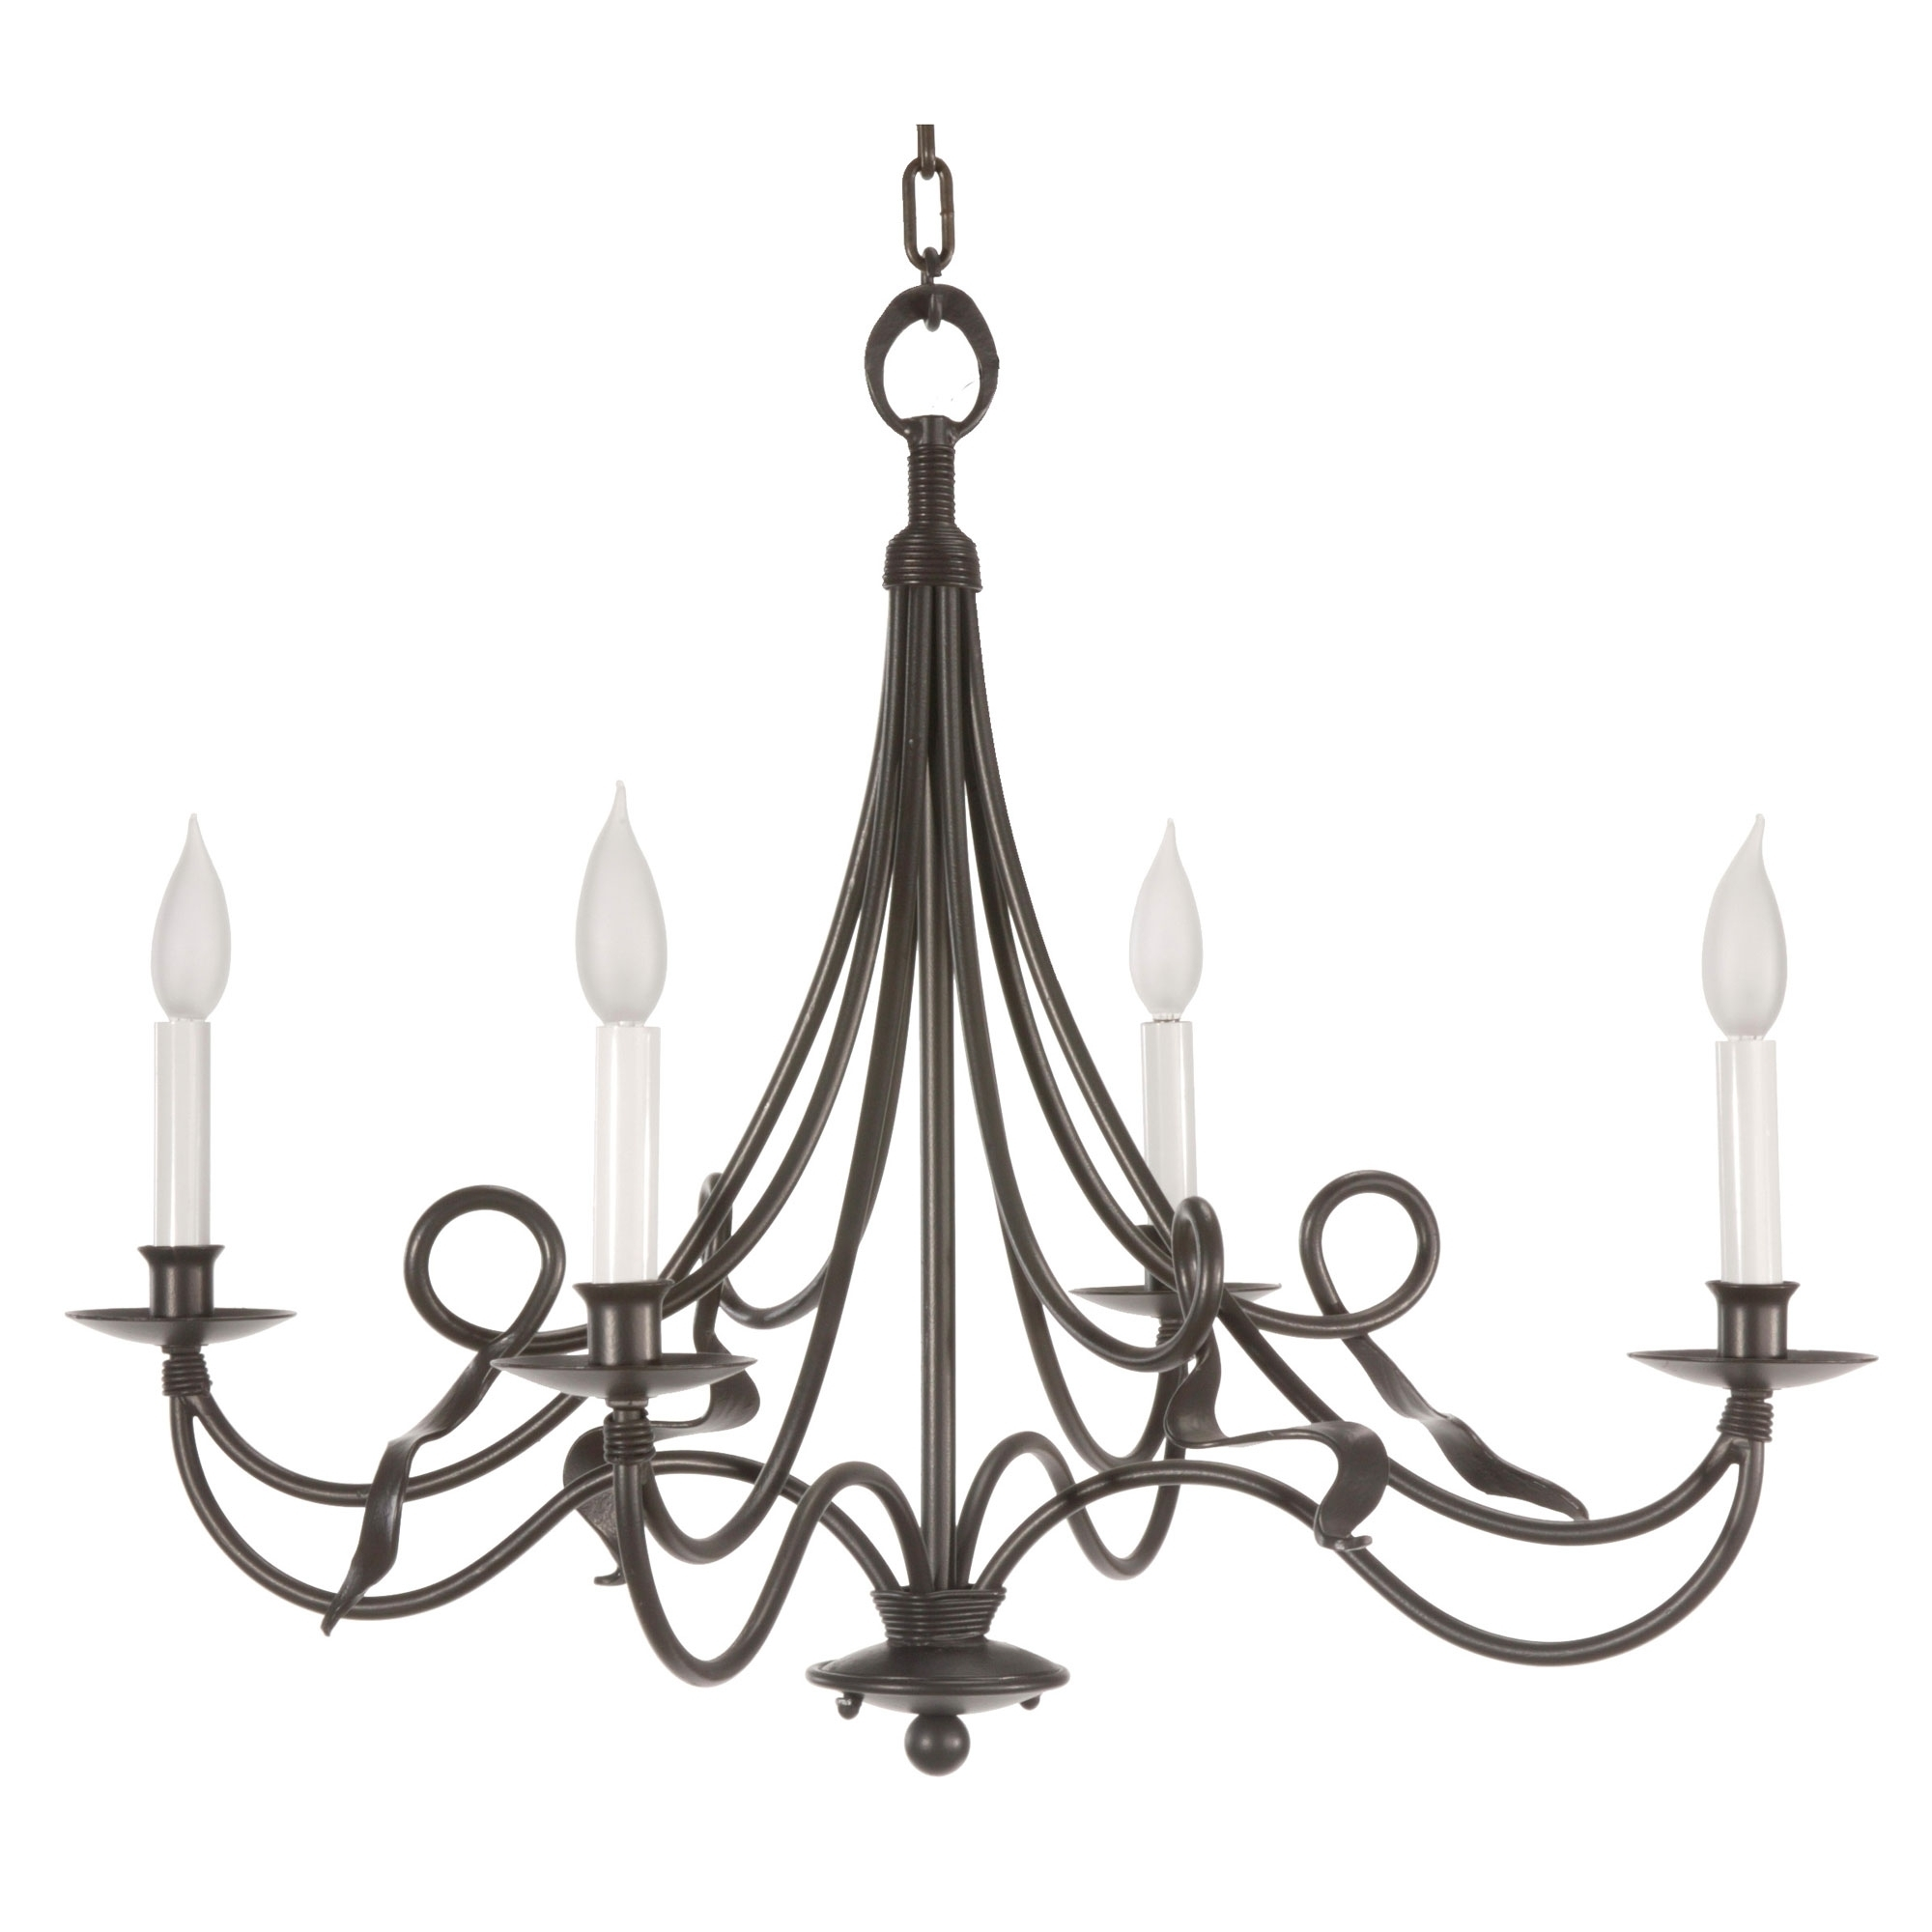 Well Liked Black Color Rustic Cast Iron Chandeliers With Candle Holder For Regarding Black Iron Chandeliers (View 6 of 20)